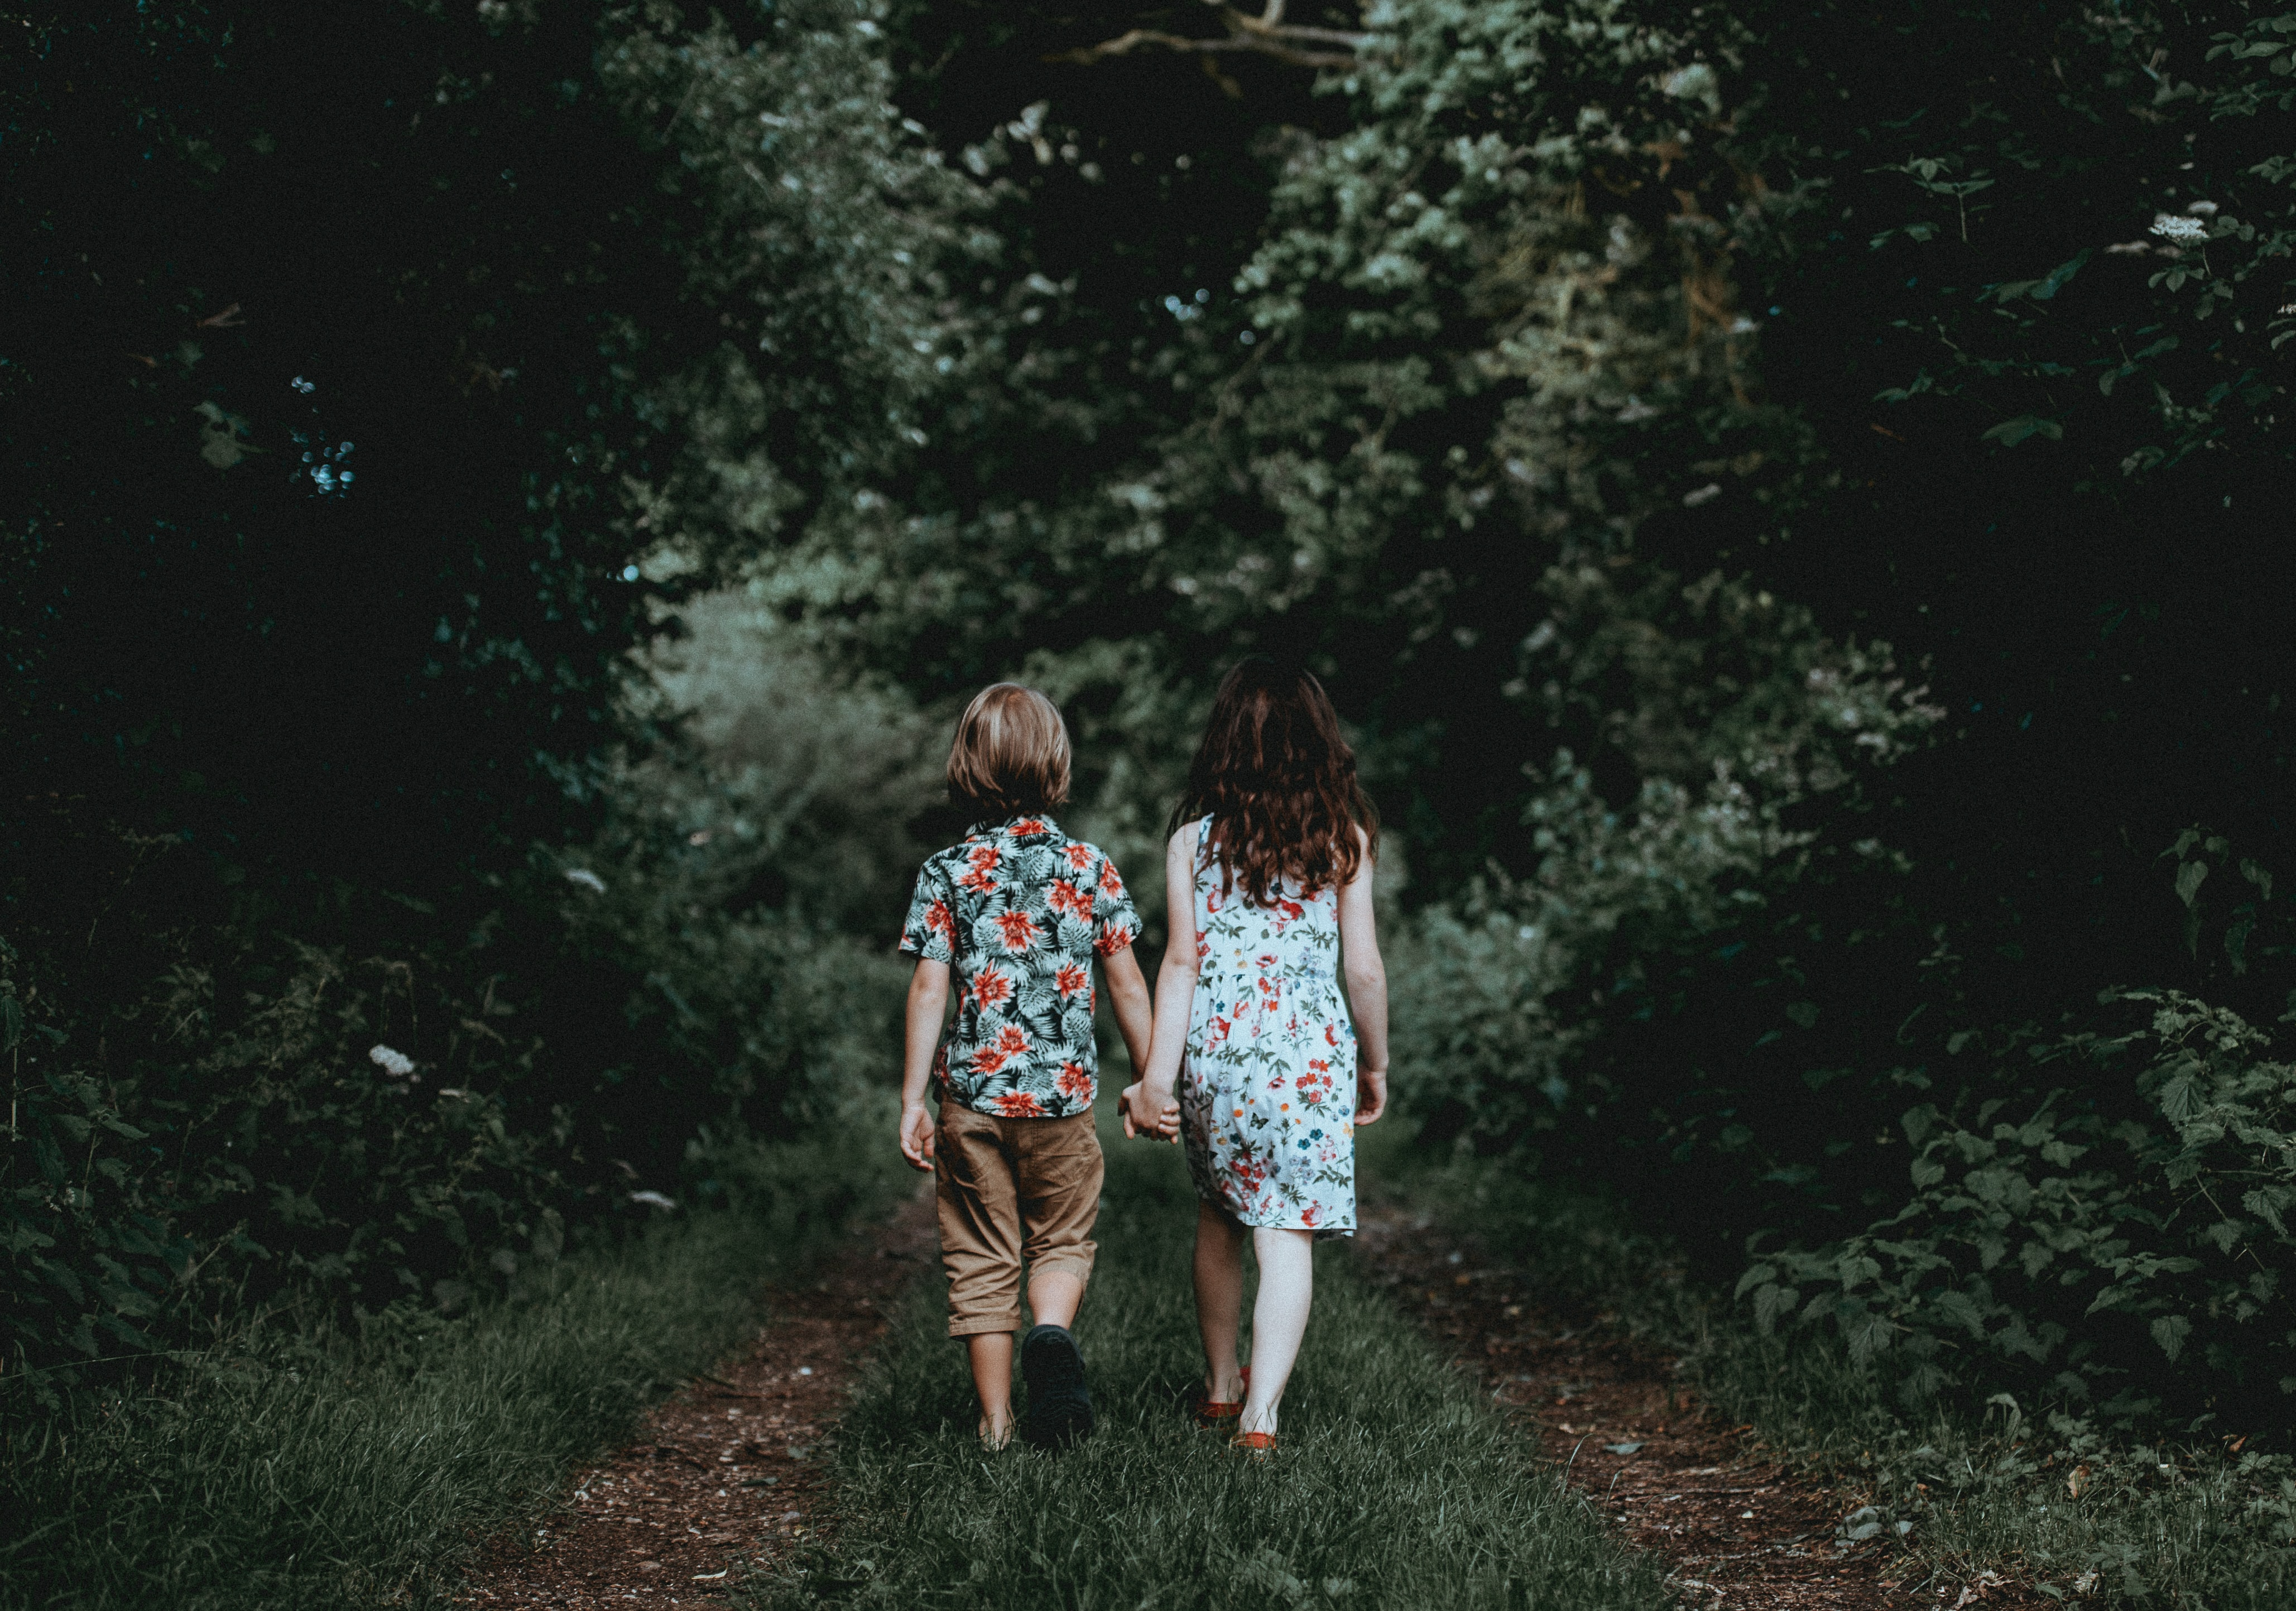 A girl and a boy hold hands and walk down a wooded trail